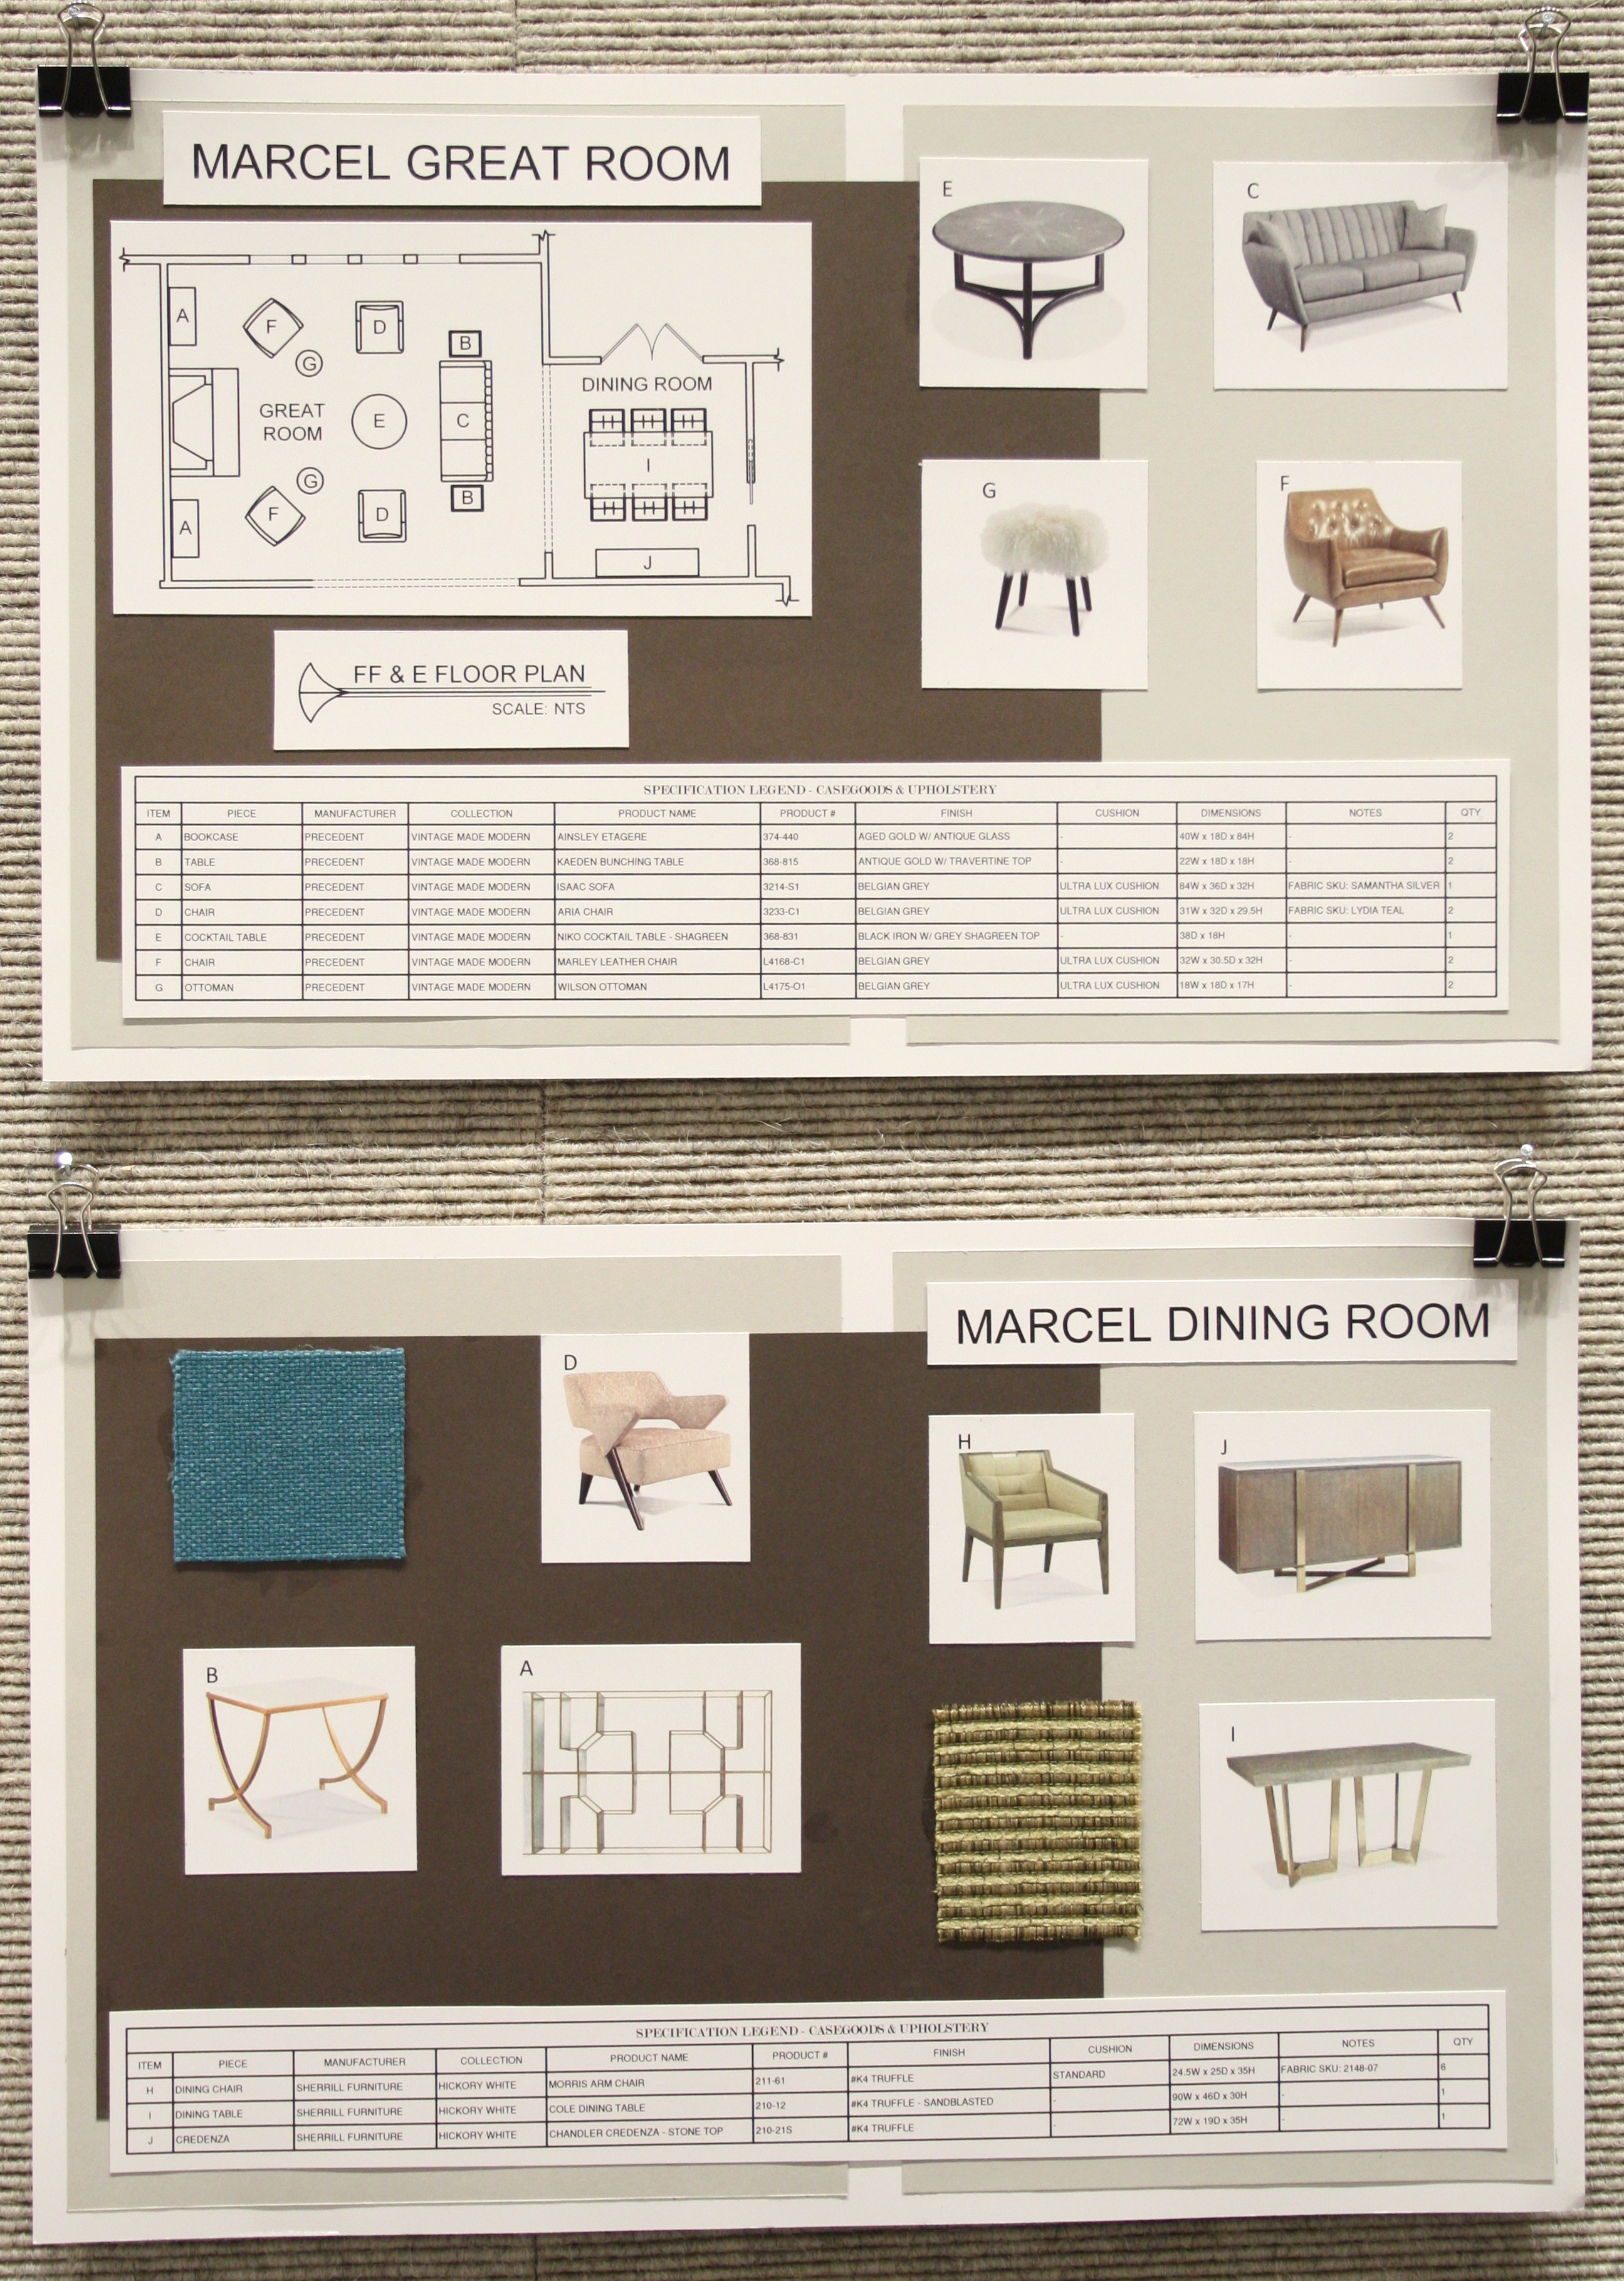 Drawings and plans for living room and dining room interior.